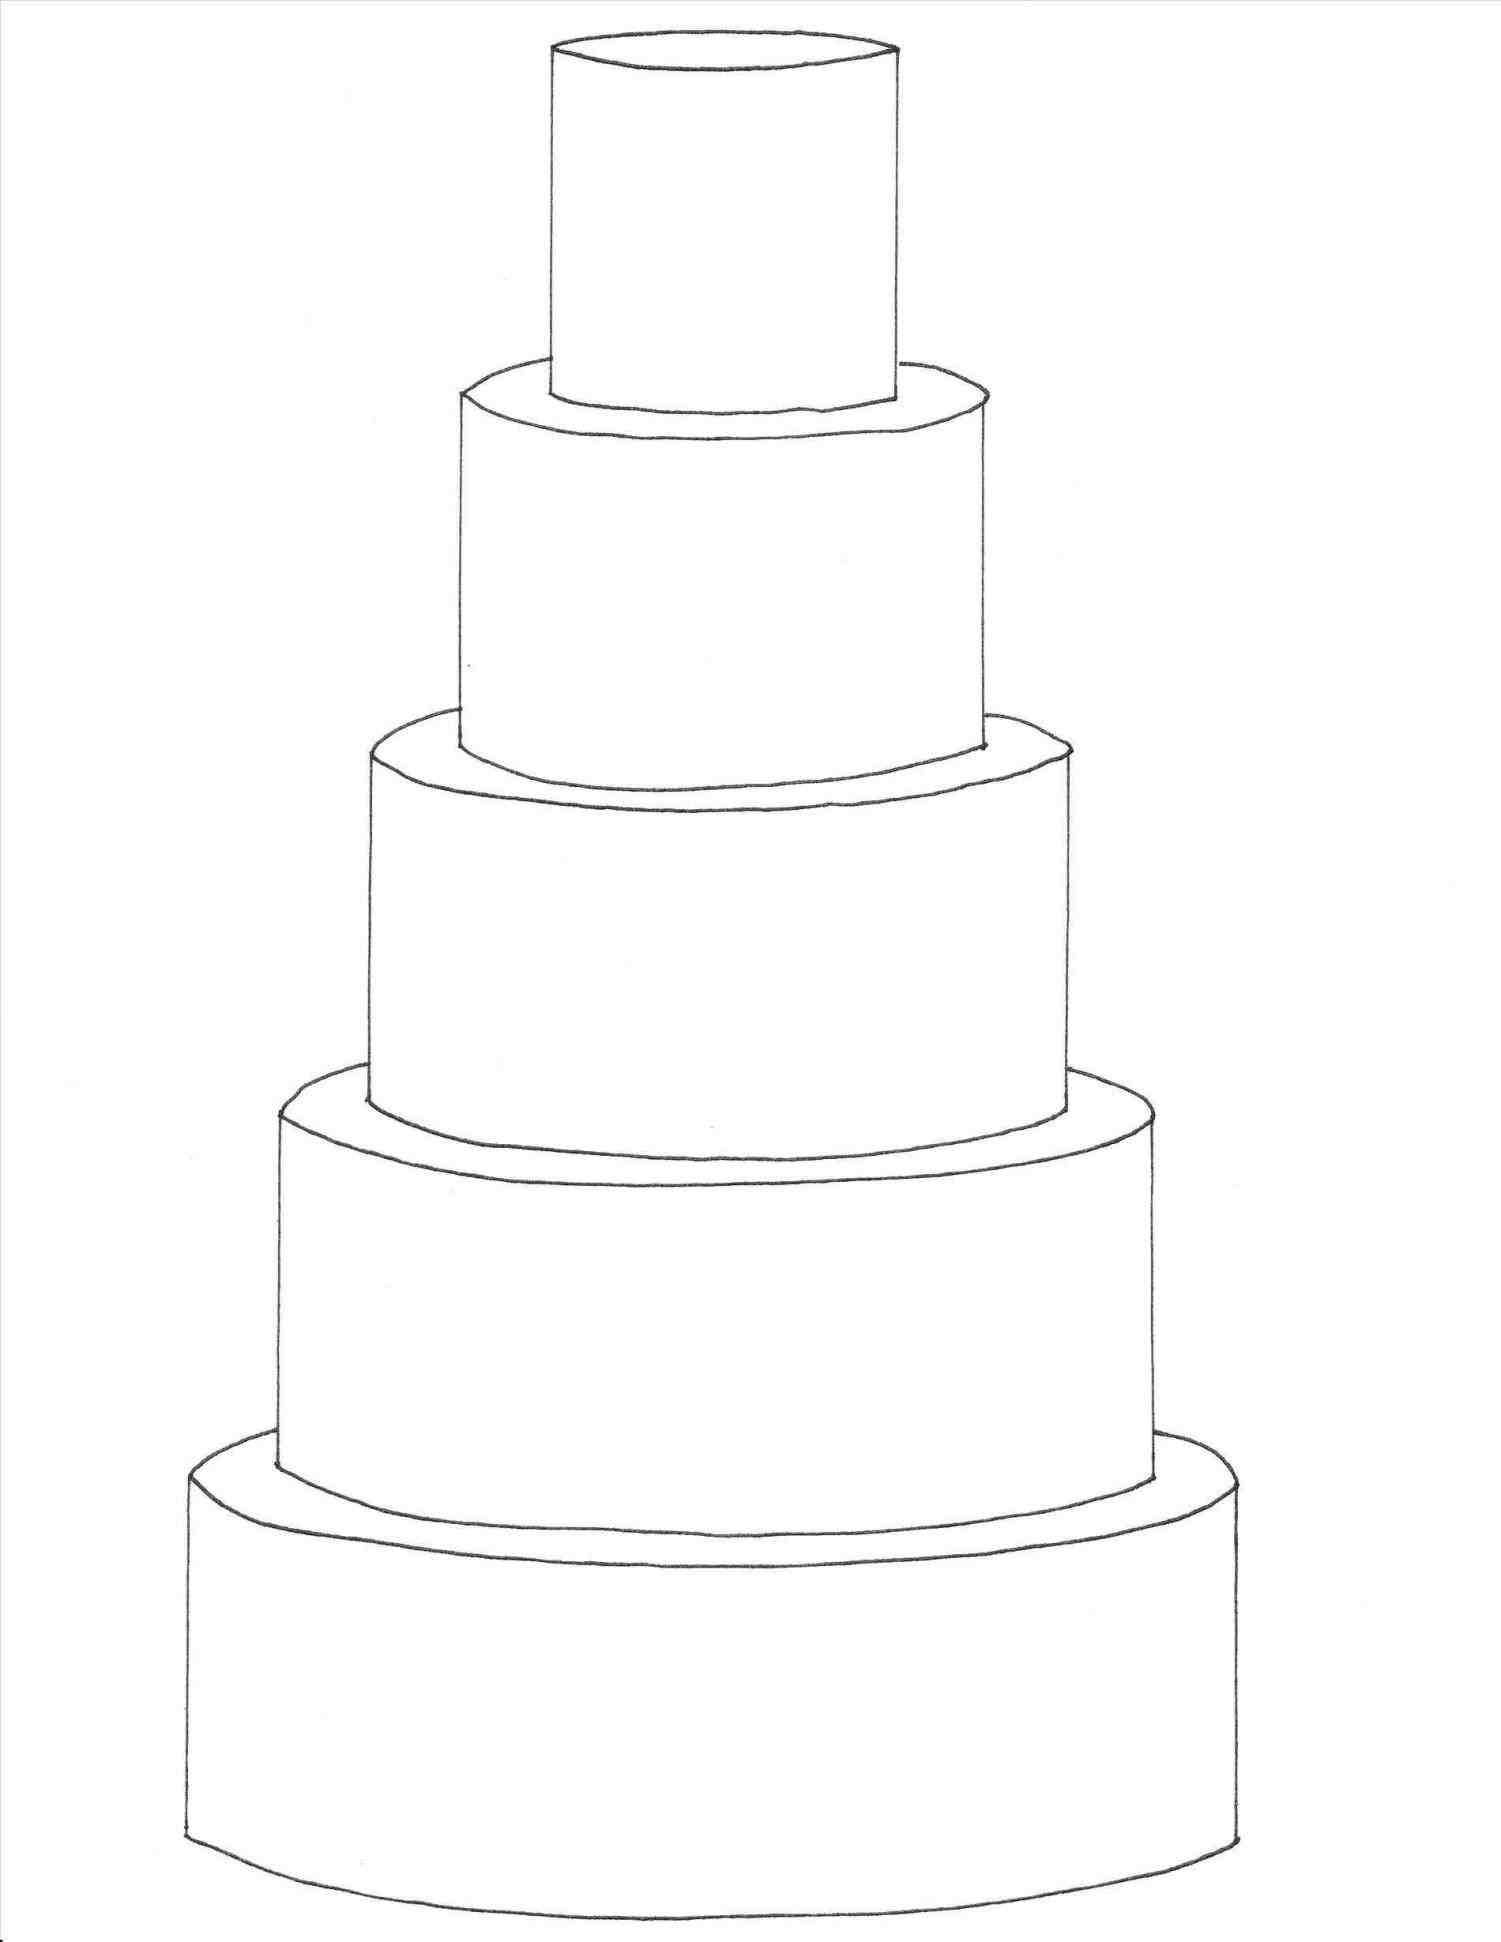 Top 10 New Post Wedding Cake Drawing Template Visit Wedbridal Site